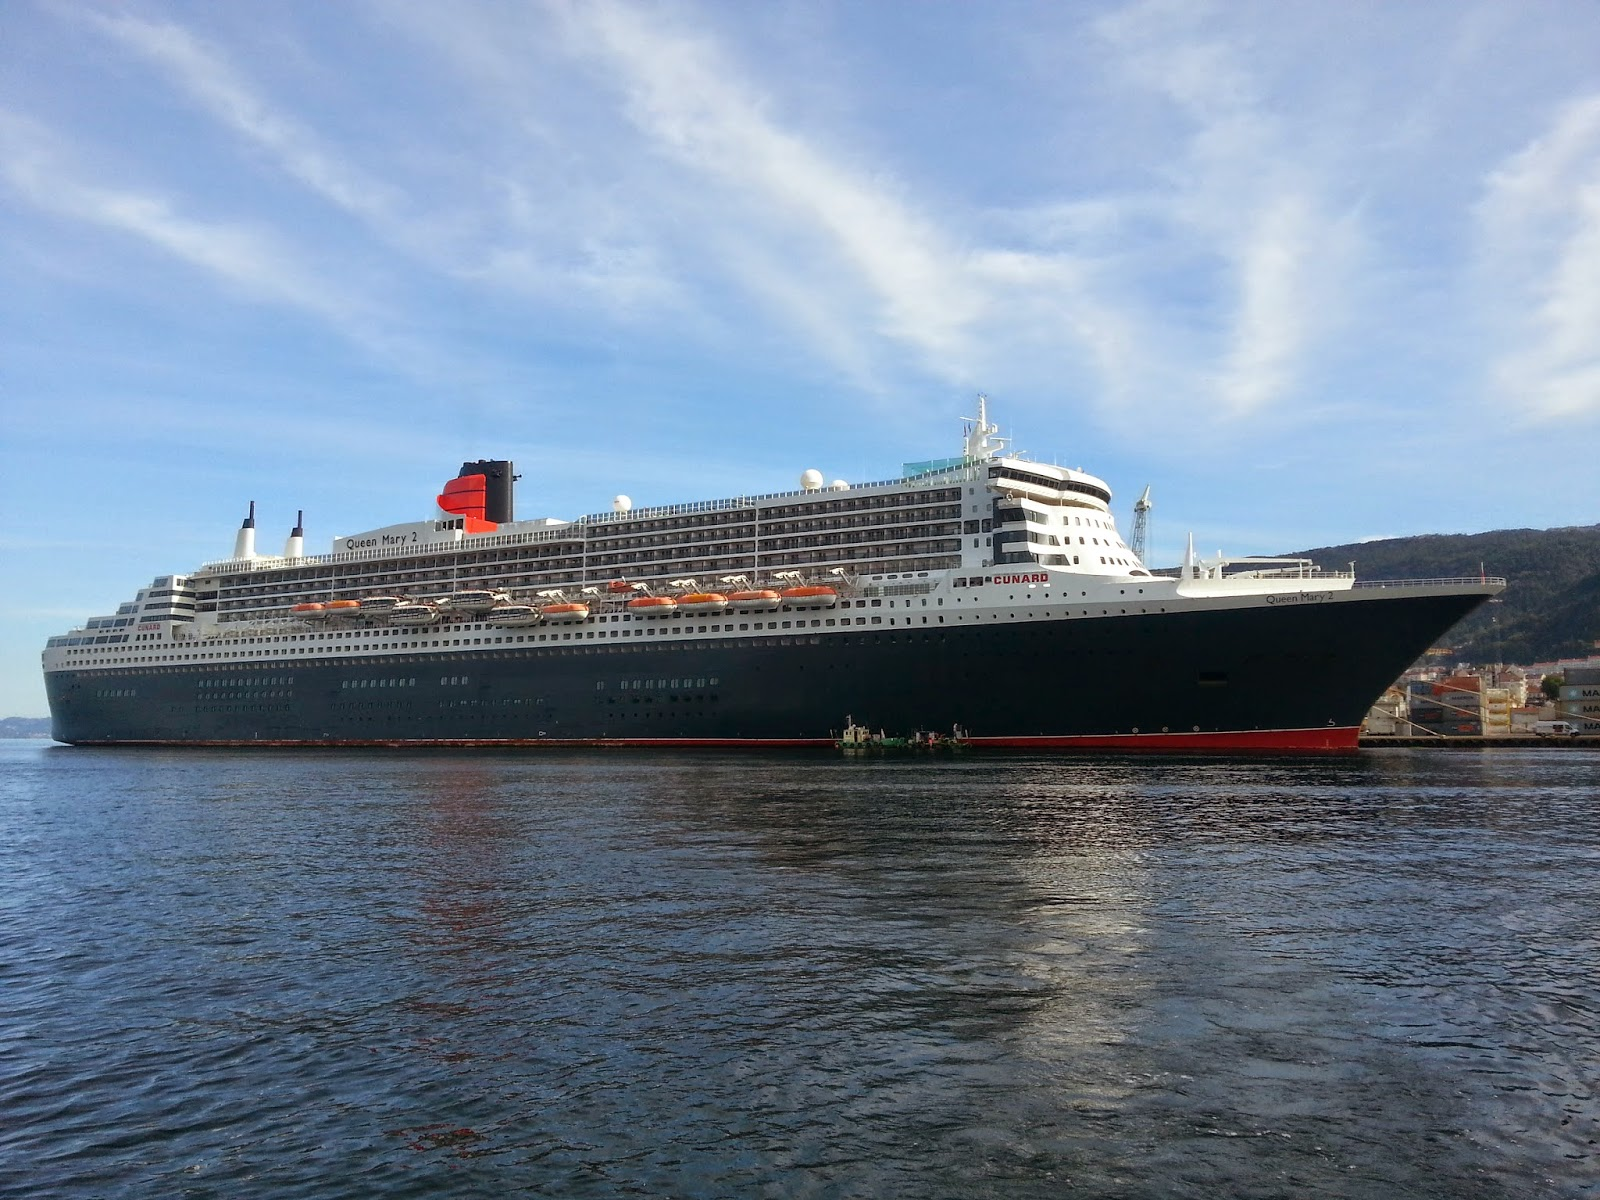 http://shipsinbergen.blogspot.no/2014/08/queen-mary-2.html